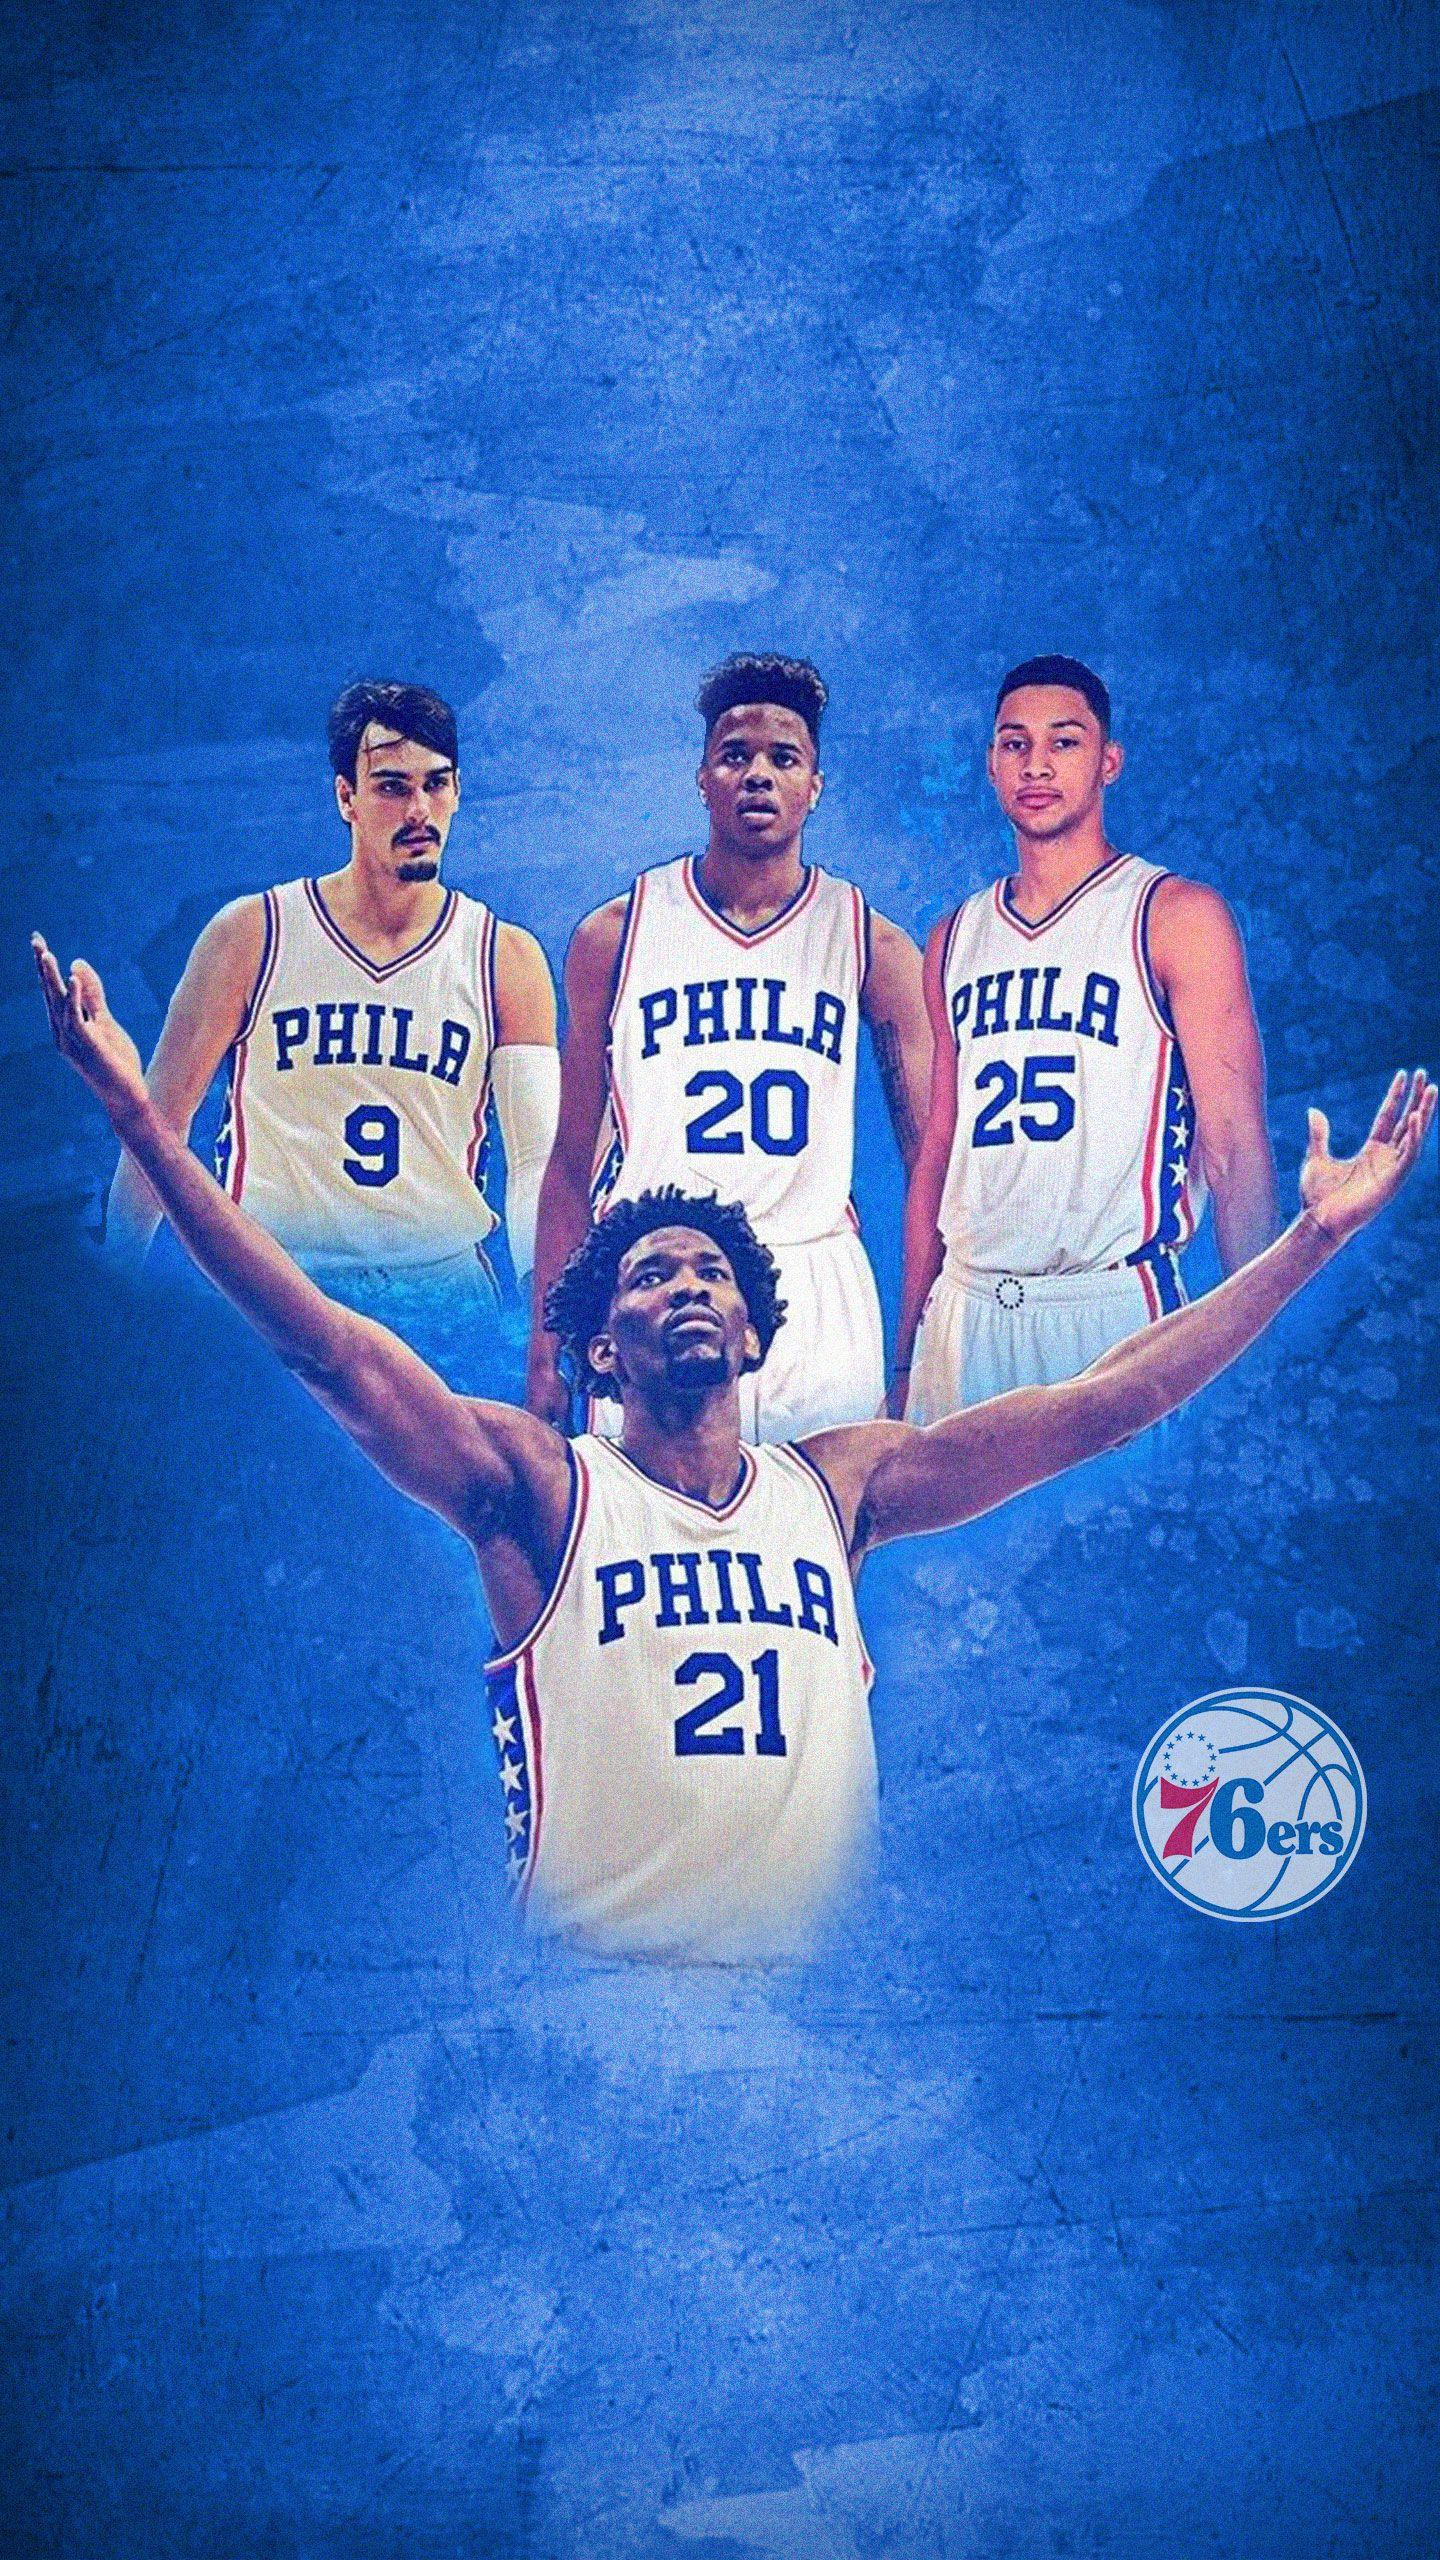 Philadelphia 76ers 2019 Wallpapers Wallpaper Cave